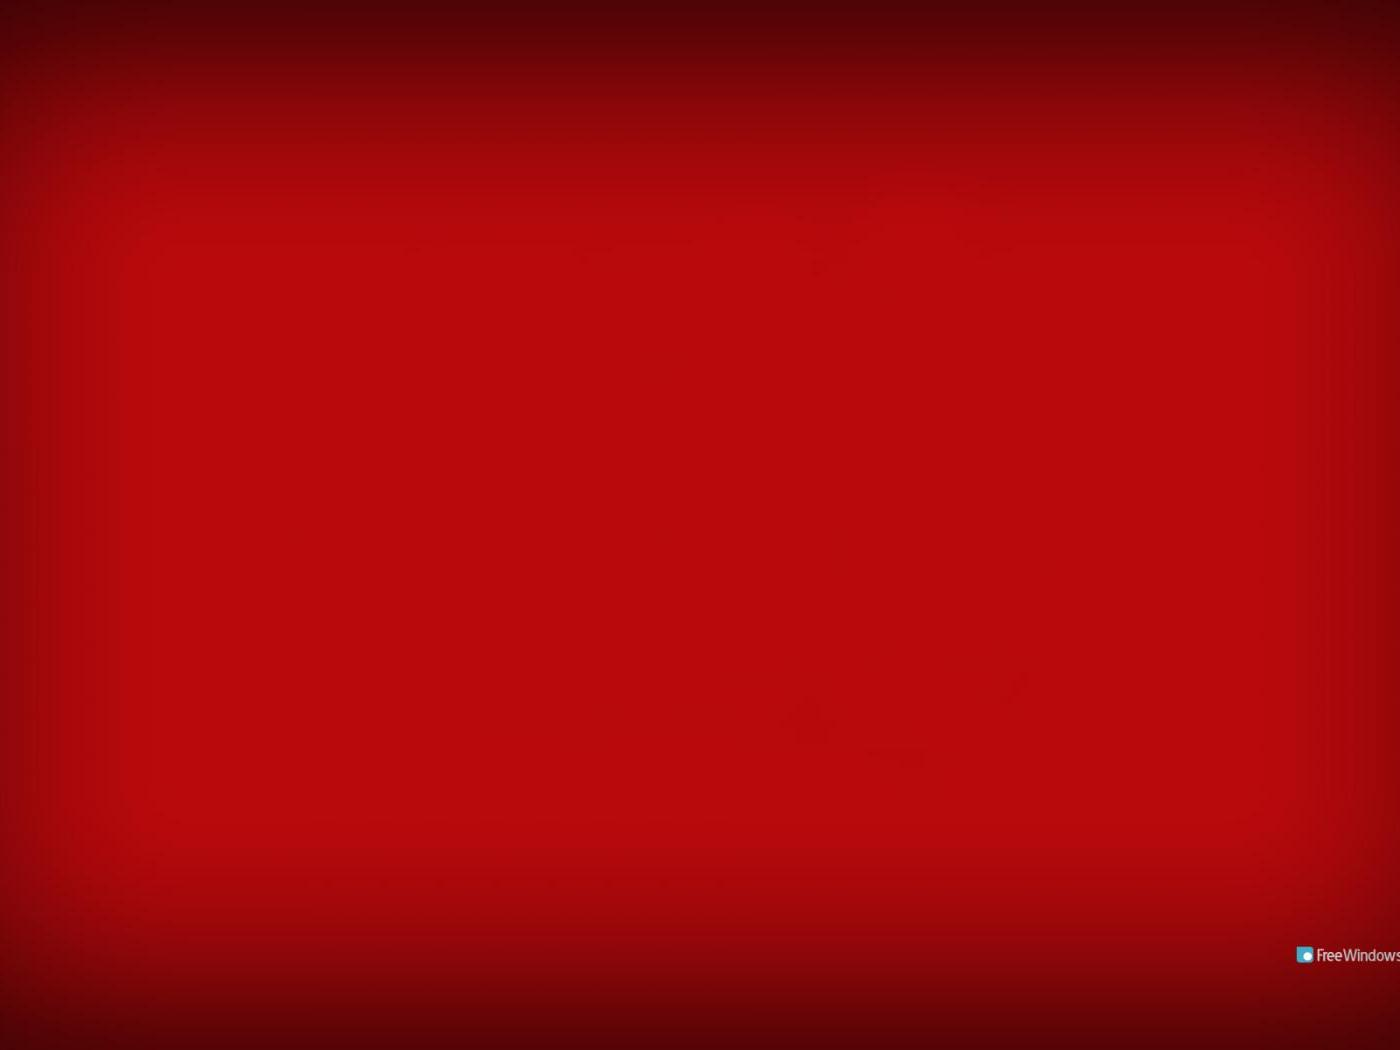 1400x1050 | Red Computer Wallpaper | Solid Red Wallpaper